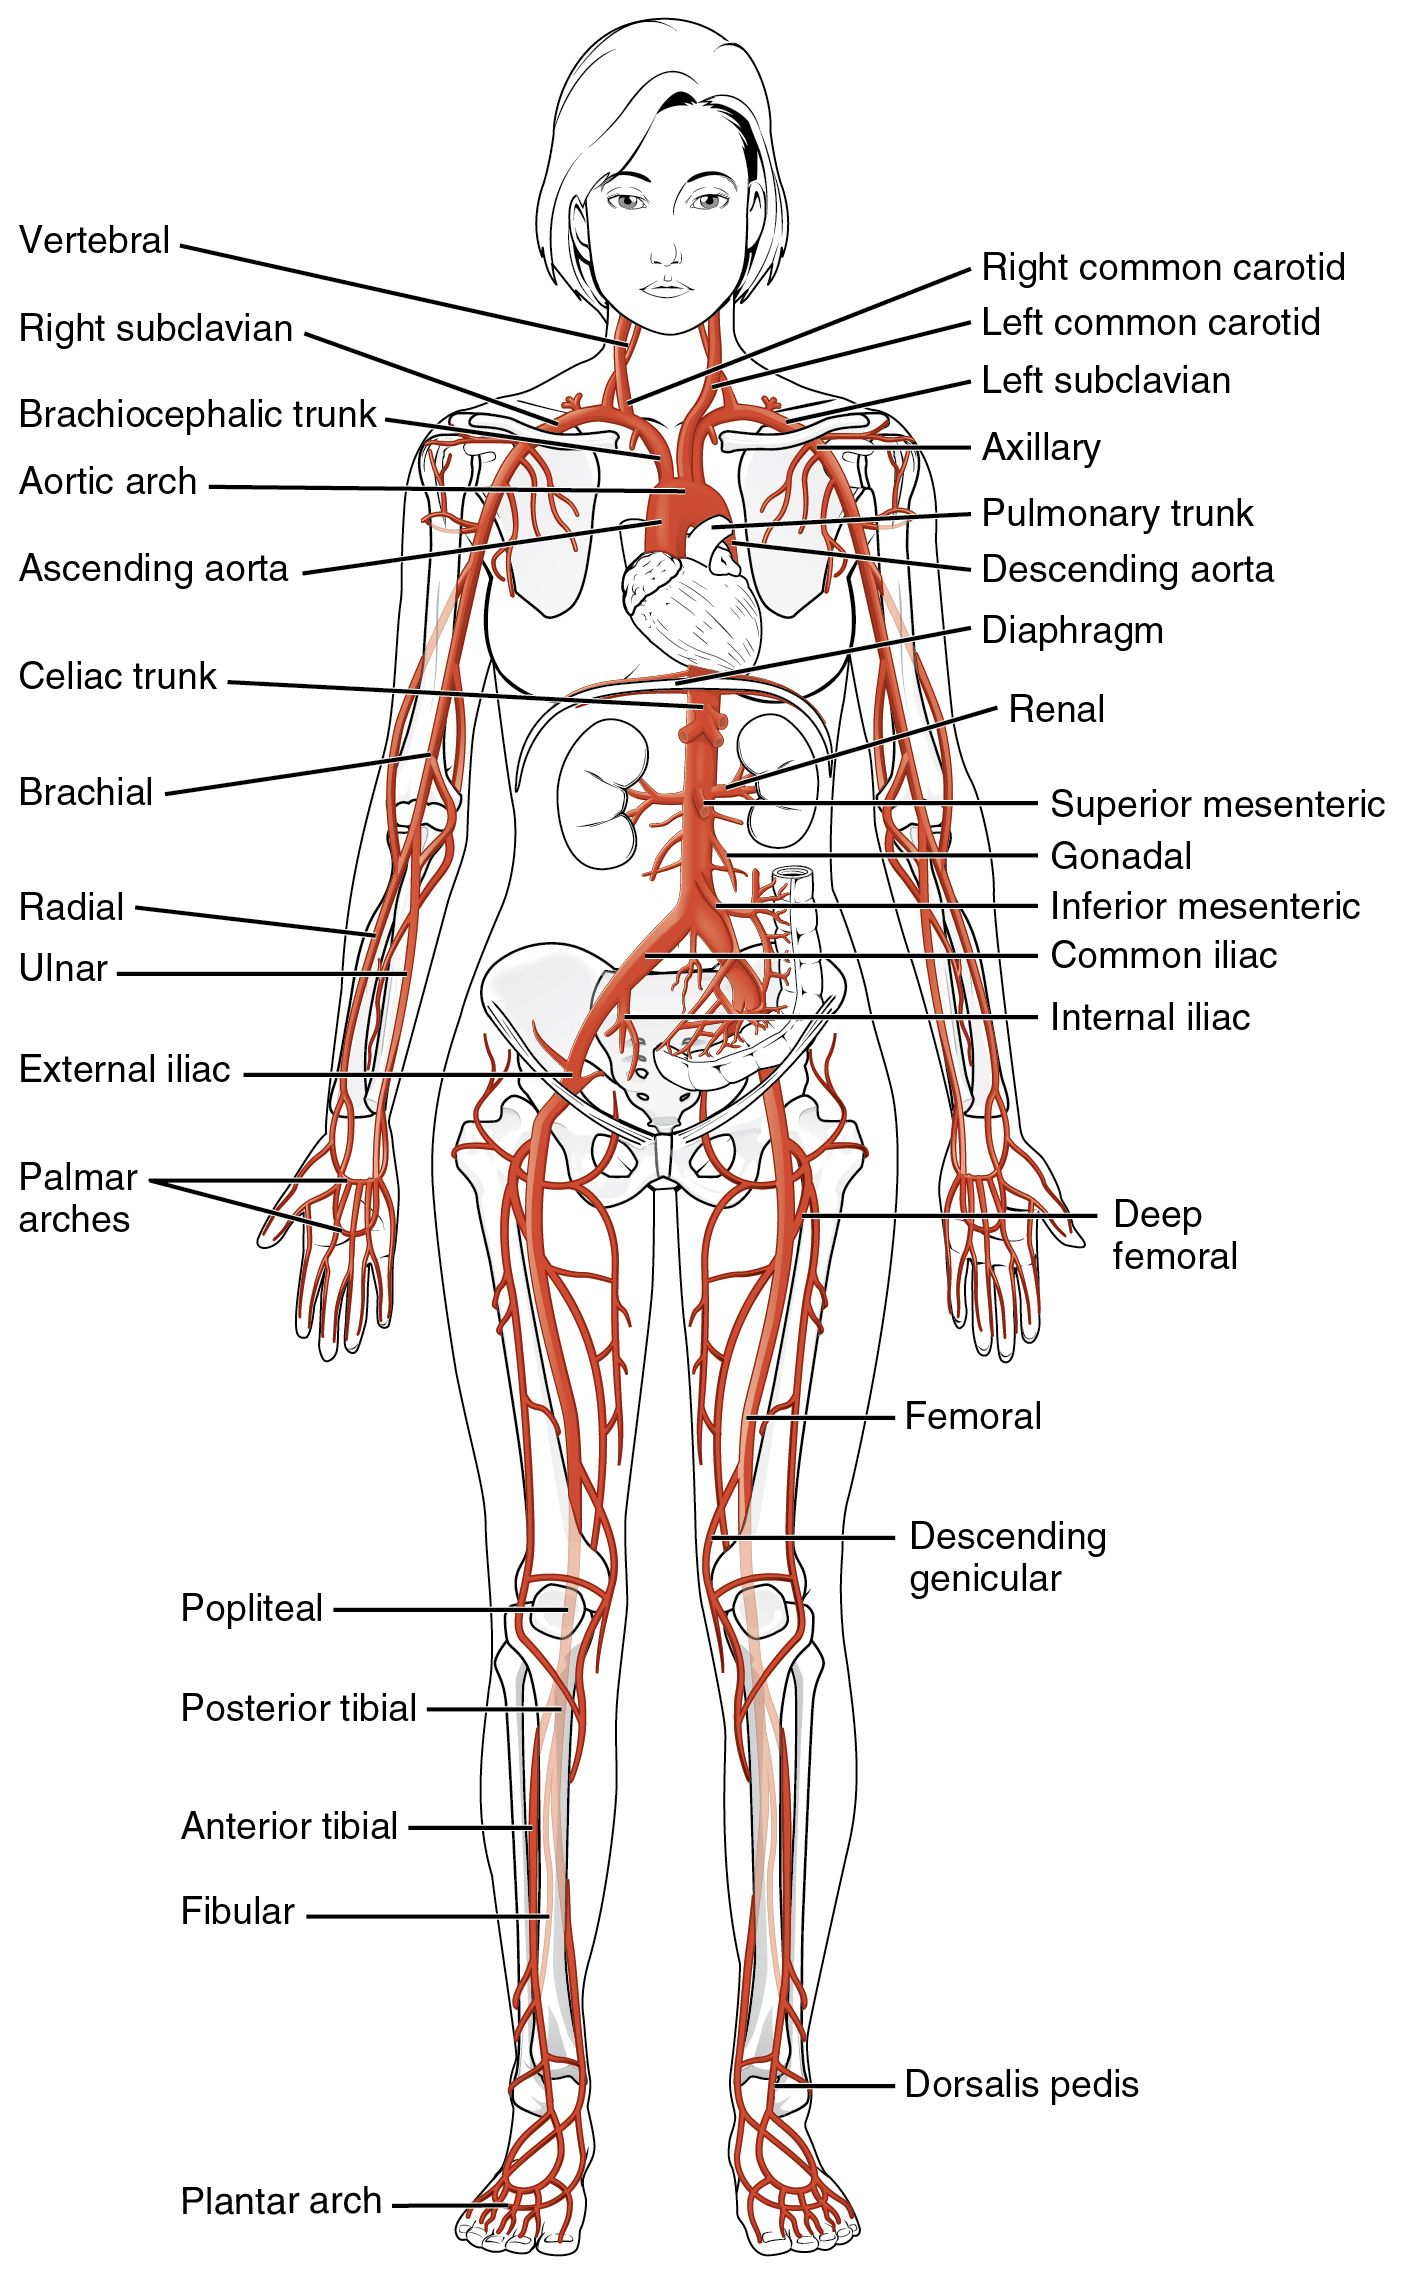 This Diagrams Shows The Major Arteries In The Human Body School